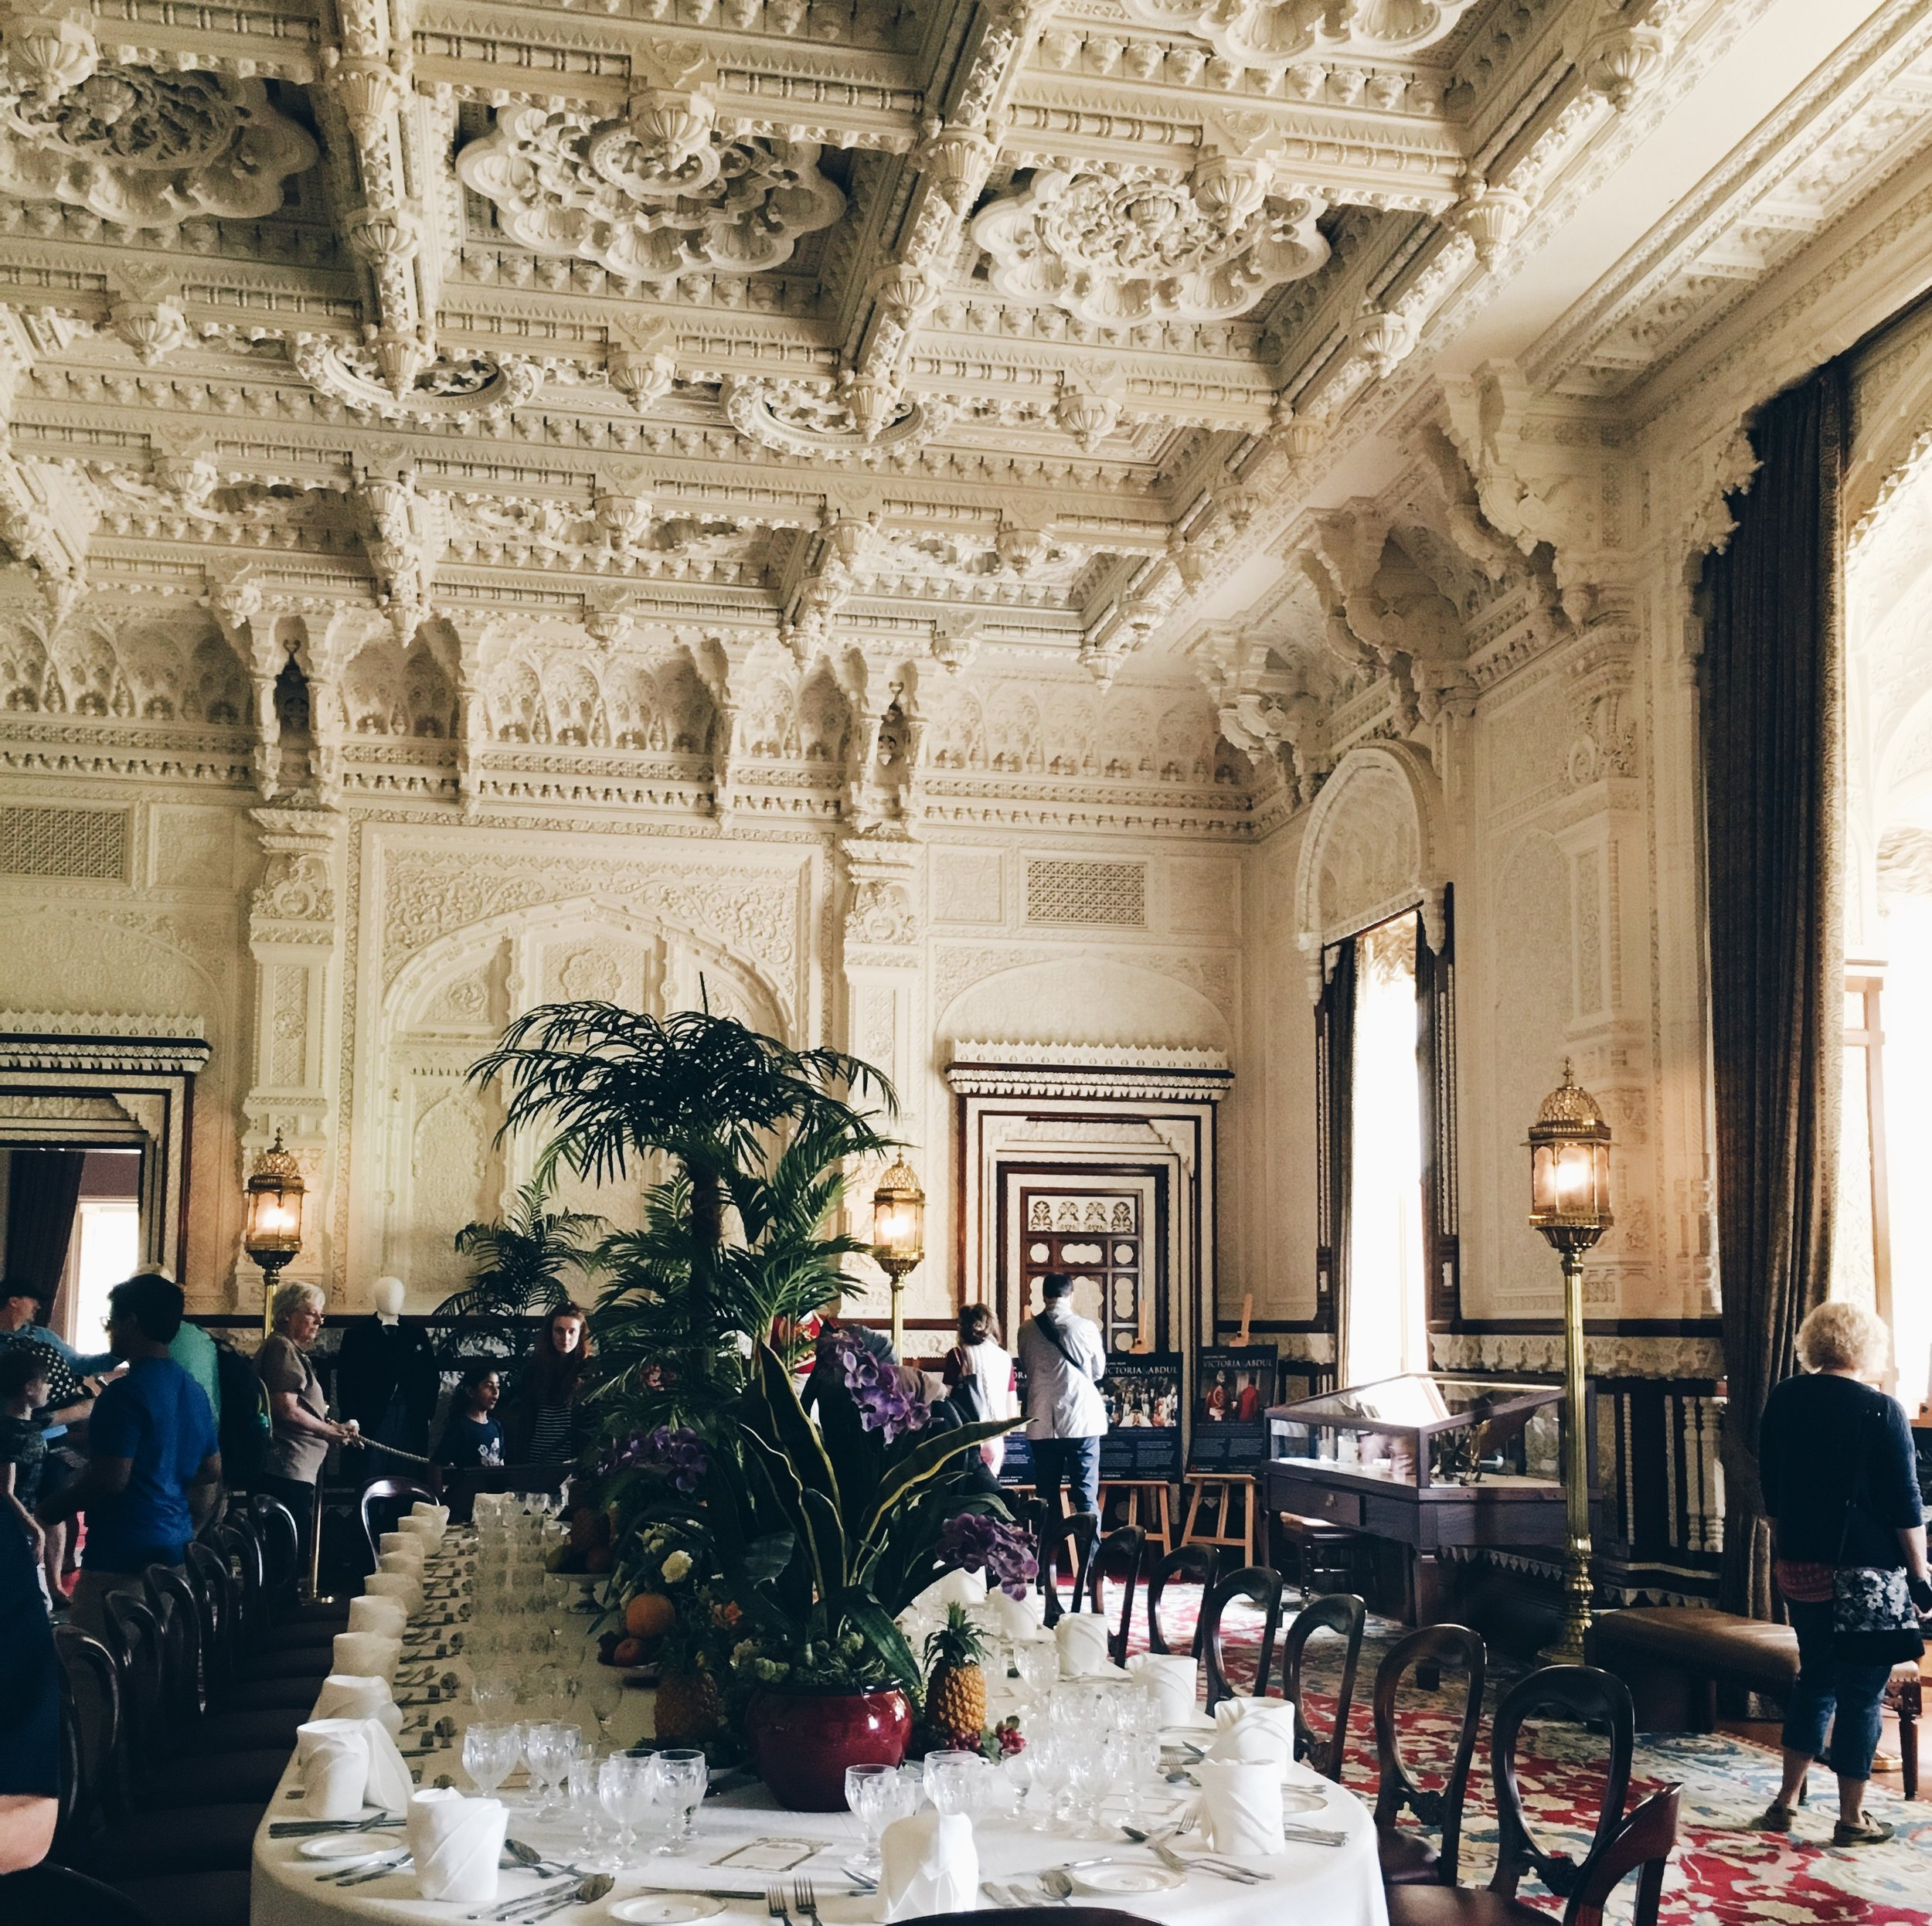 This is the Durba Room which was inspired by Victoria's love of India.  Osborne House has been used to film the recent film Victoria and Abdul because the house reflects her love for this part of her empire. The ceiling is really breathtaking.  The table setting is an example of how the table would have looked for formal dinner parties.  As you walk through the kitchen you can view the chef's log of the meals they cooked for the Queen. Lets say it's no wonder she had to have rather large dresses made!